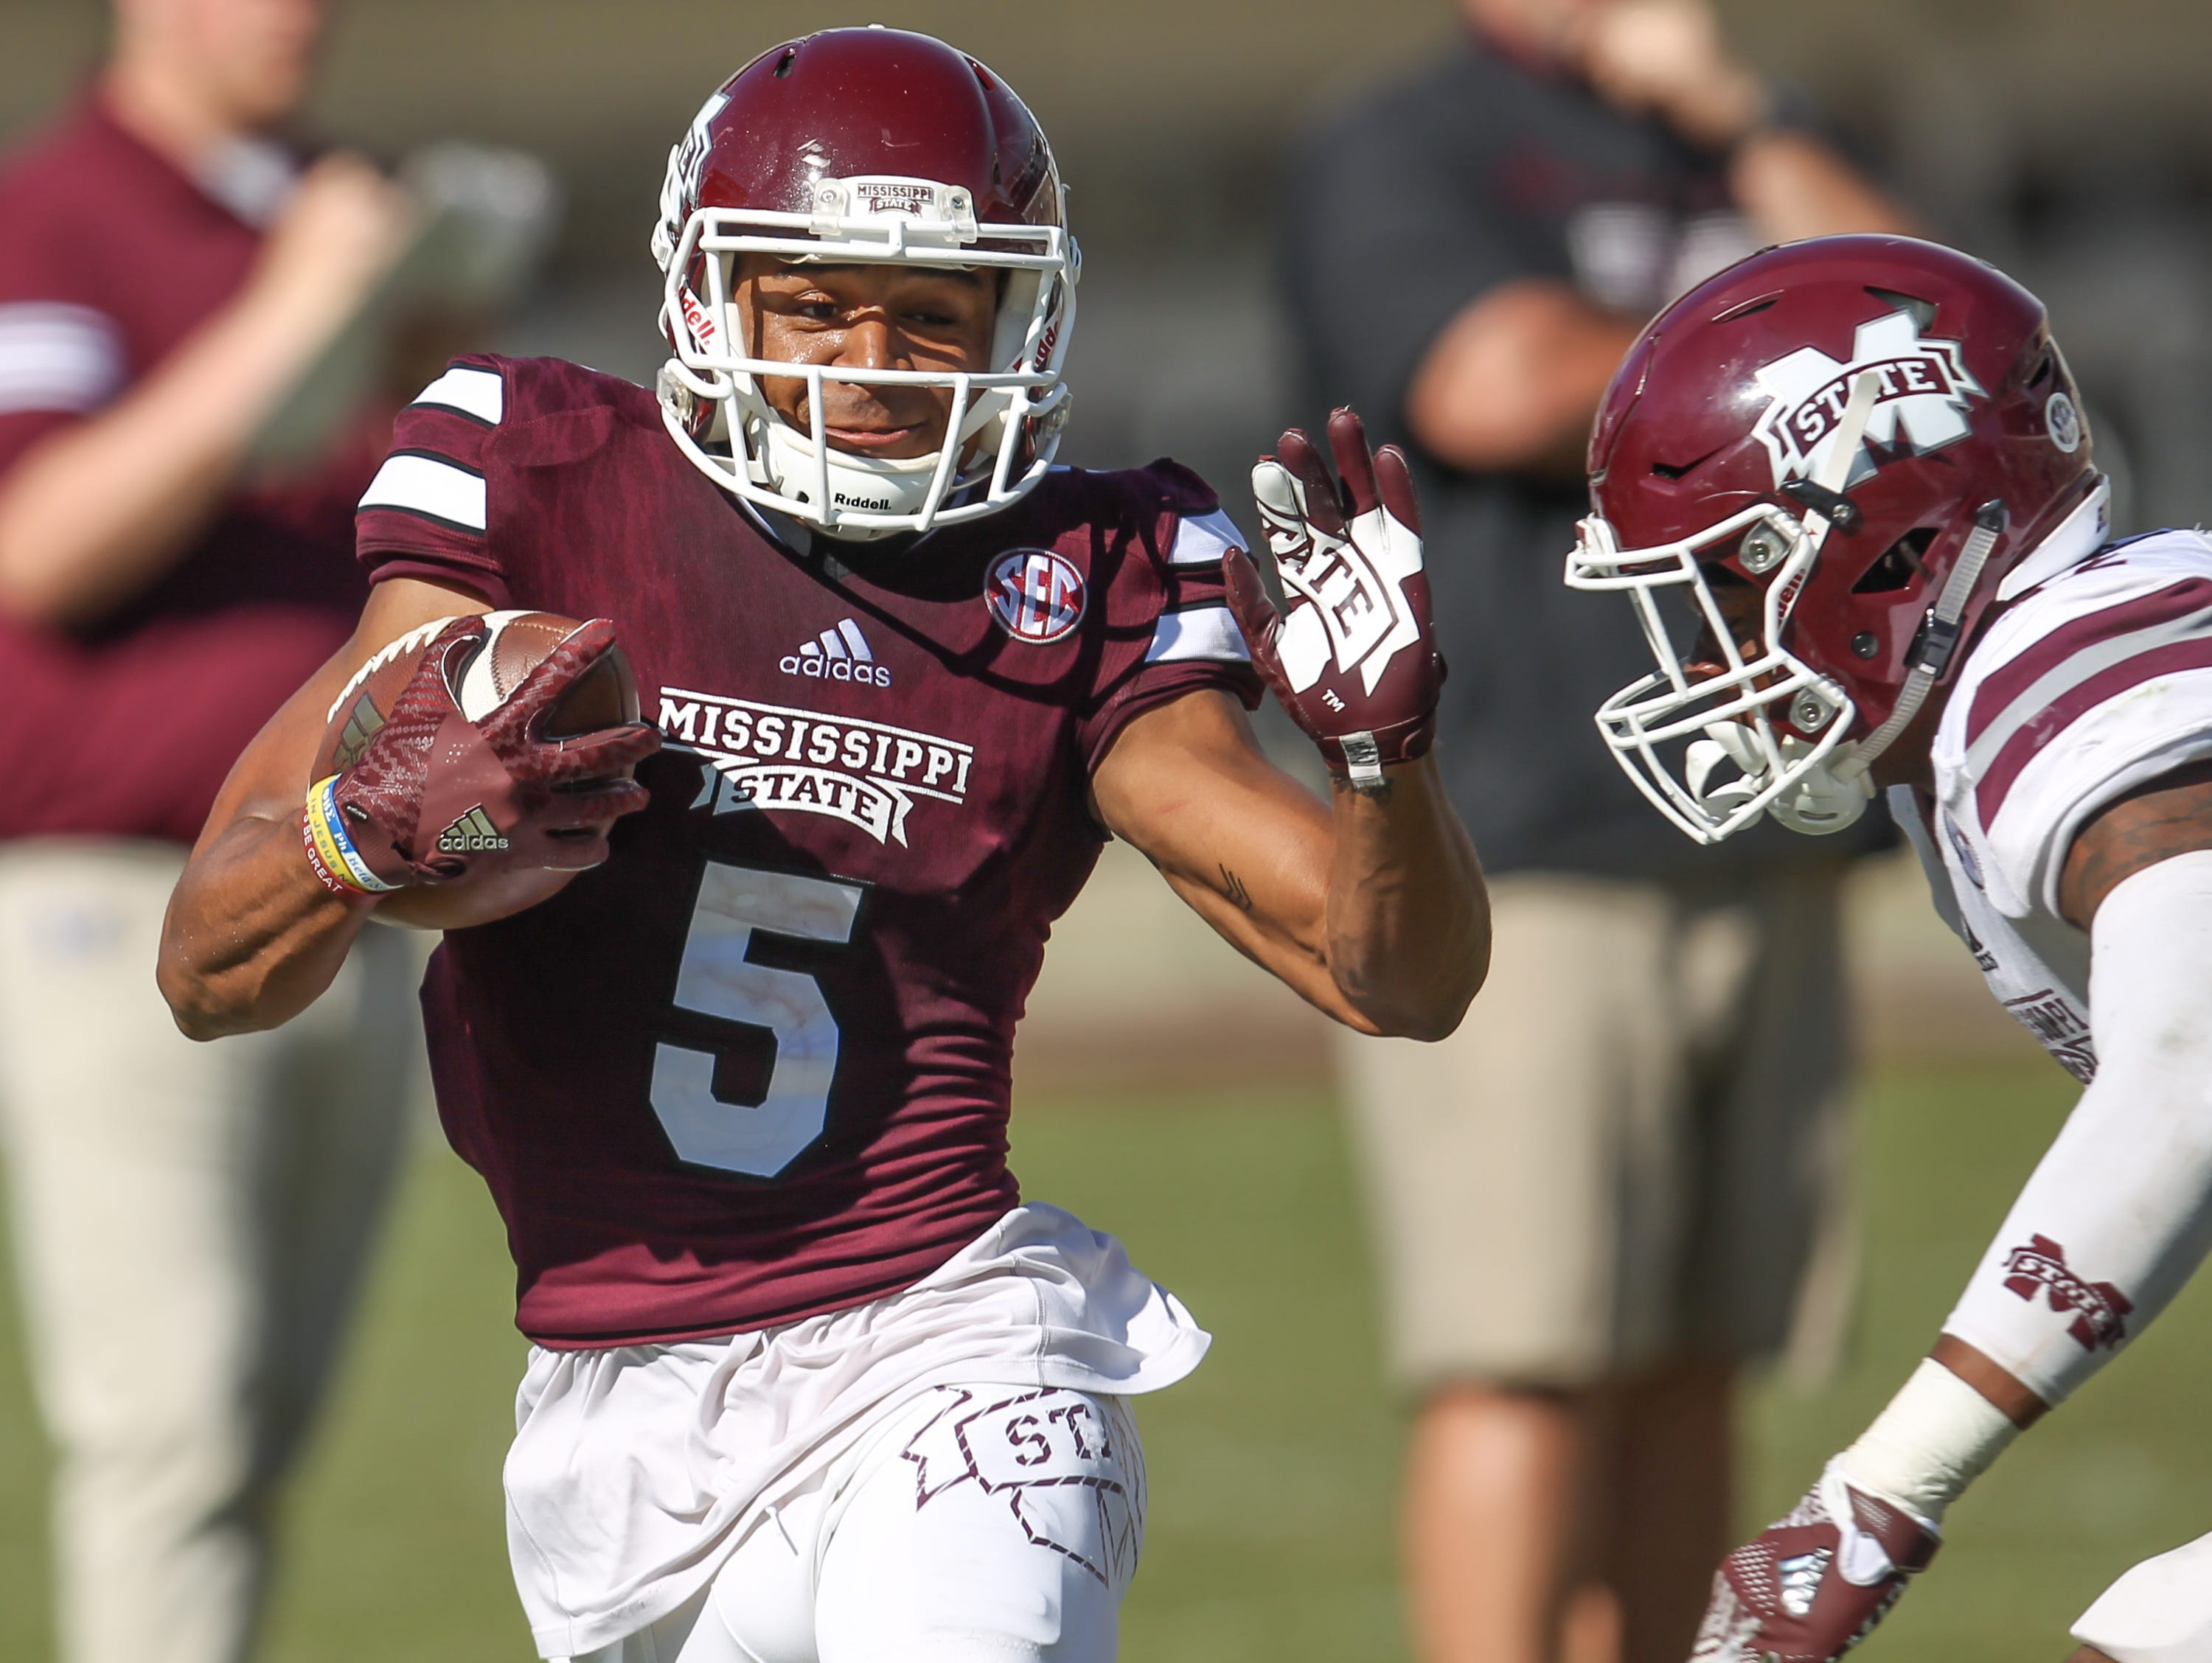 Gabe Myles (5) runs for extra yards after catching a pass in Mississippi State's Maroon and White Spring Football Game.